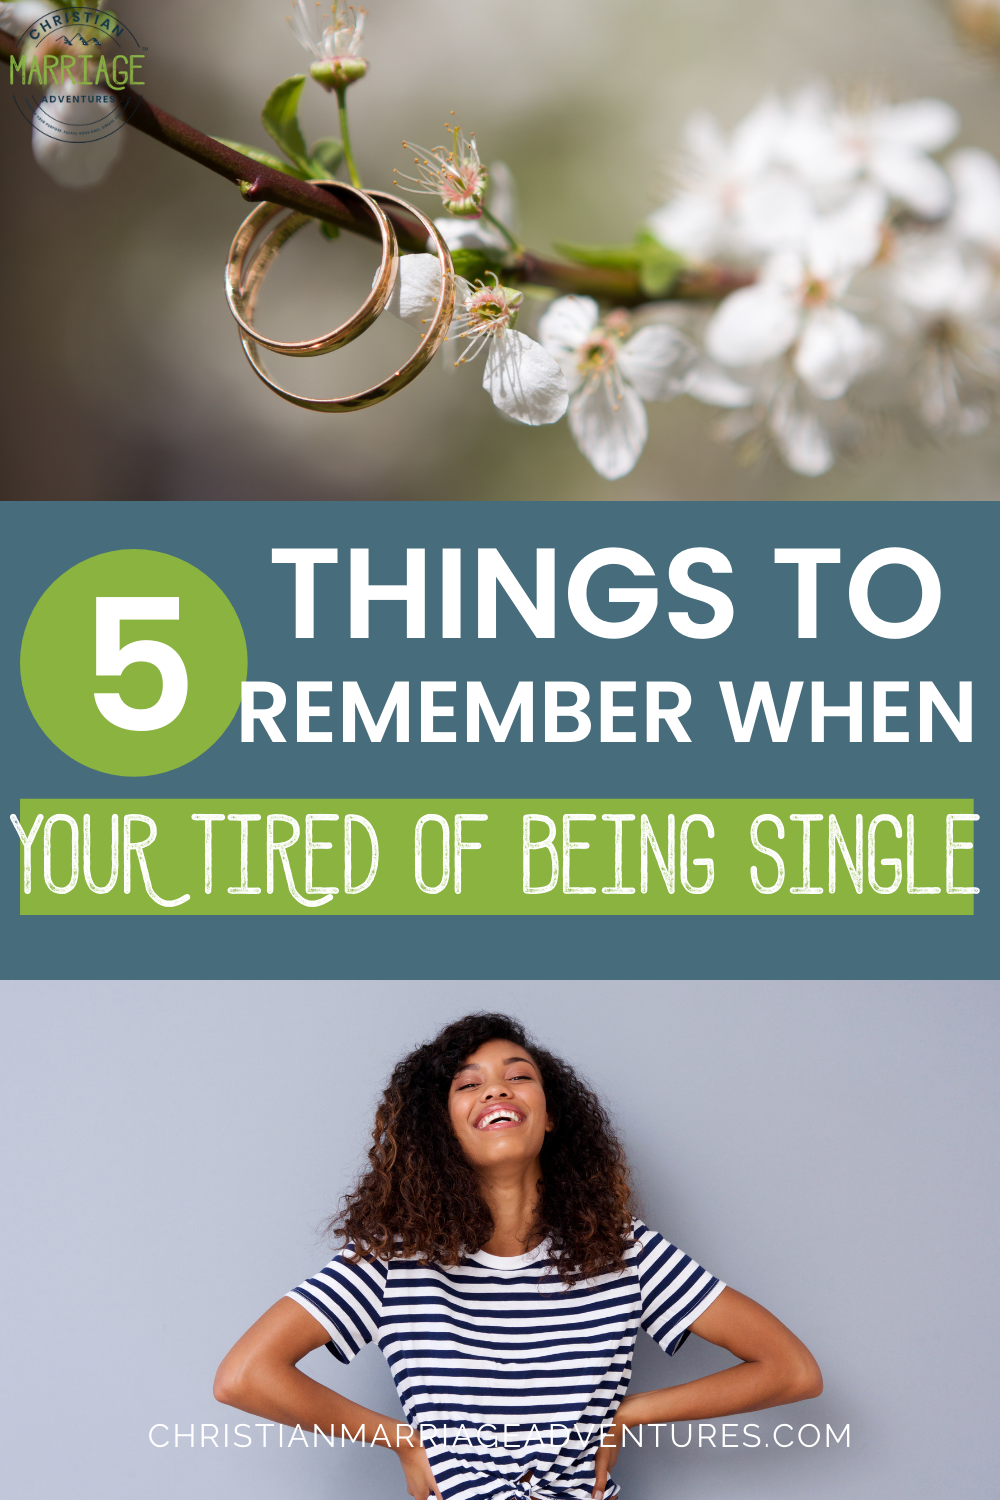 5 Things to Remember When You're Tired of Being Single